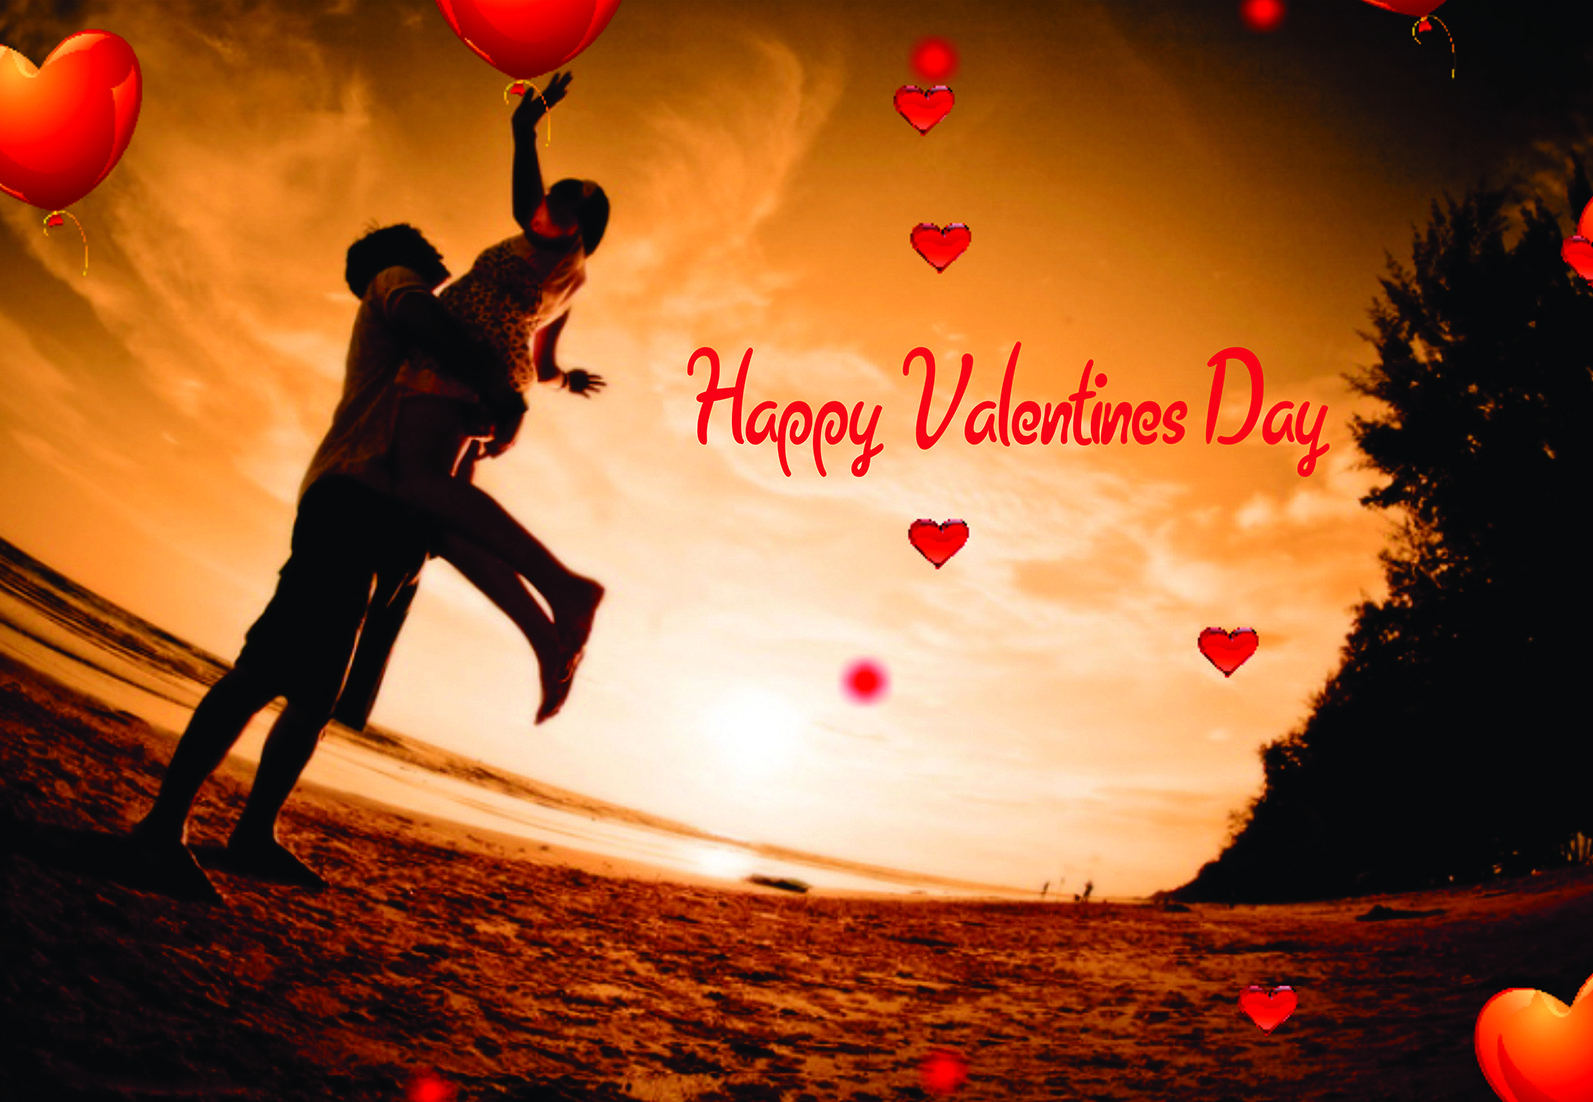 Love Wallpapers For Mobile : Valentine s Day HD Wallpaper